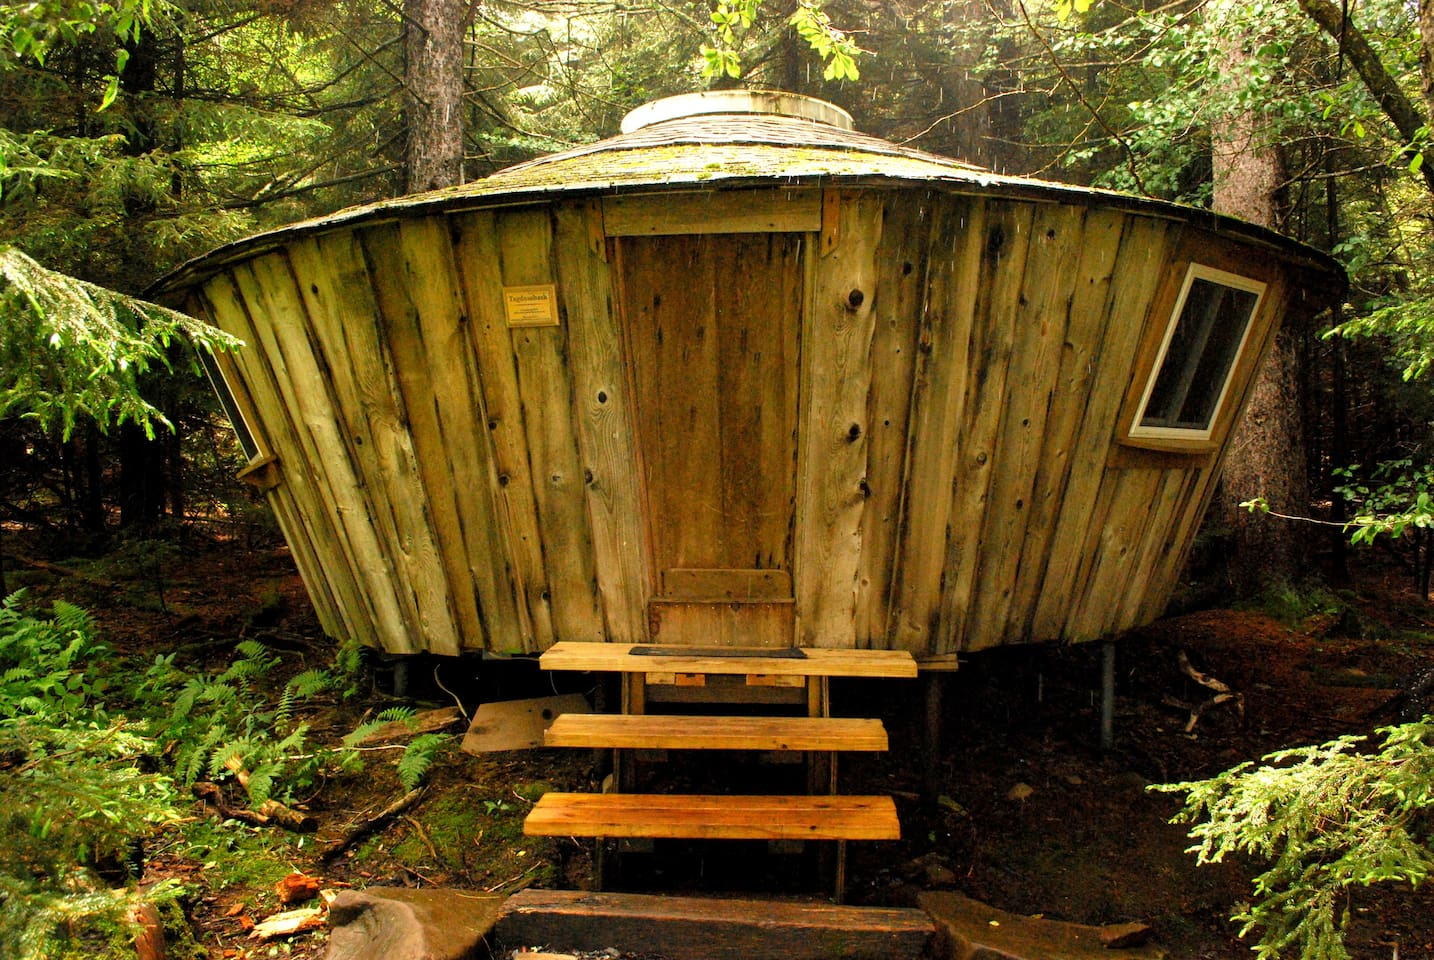 The rustic guest yurt Tagdumbash is nestled on the edge of the forest, just off a meadow. While still secluded it offers the easiest access to bathing facilities.